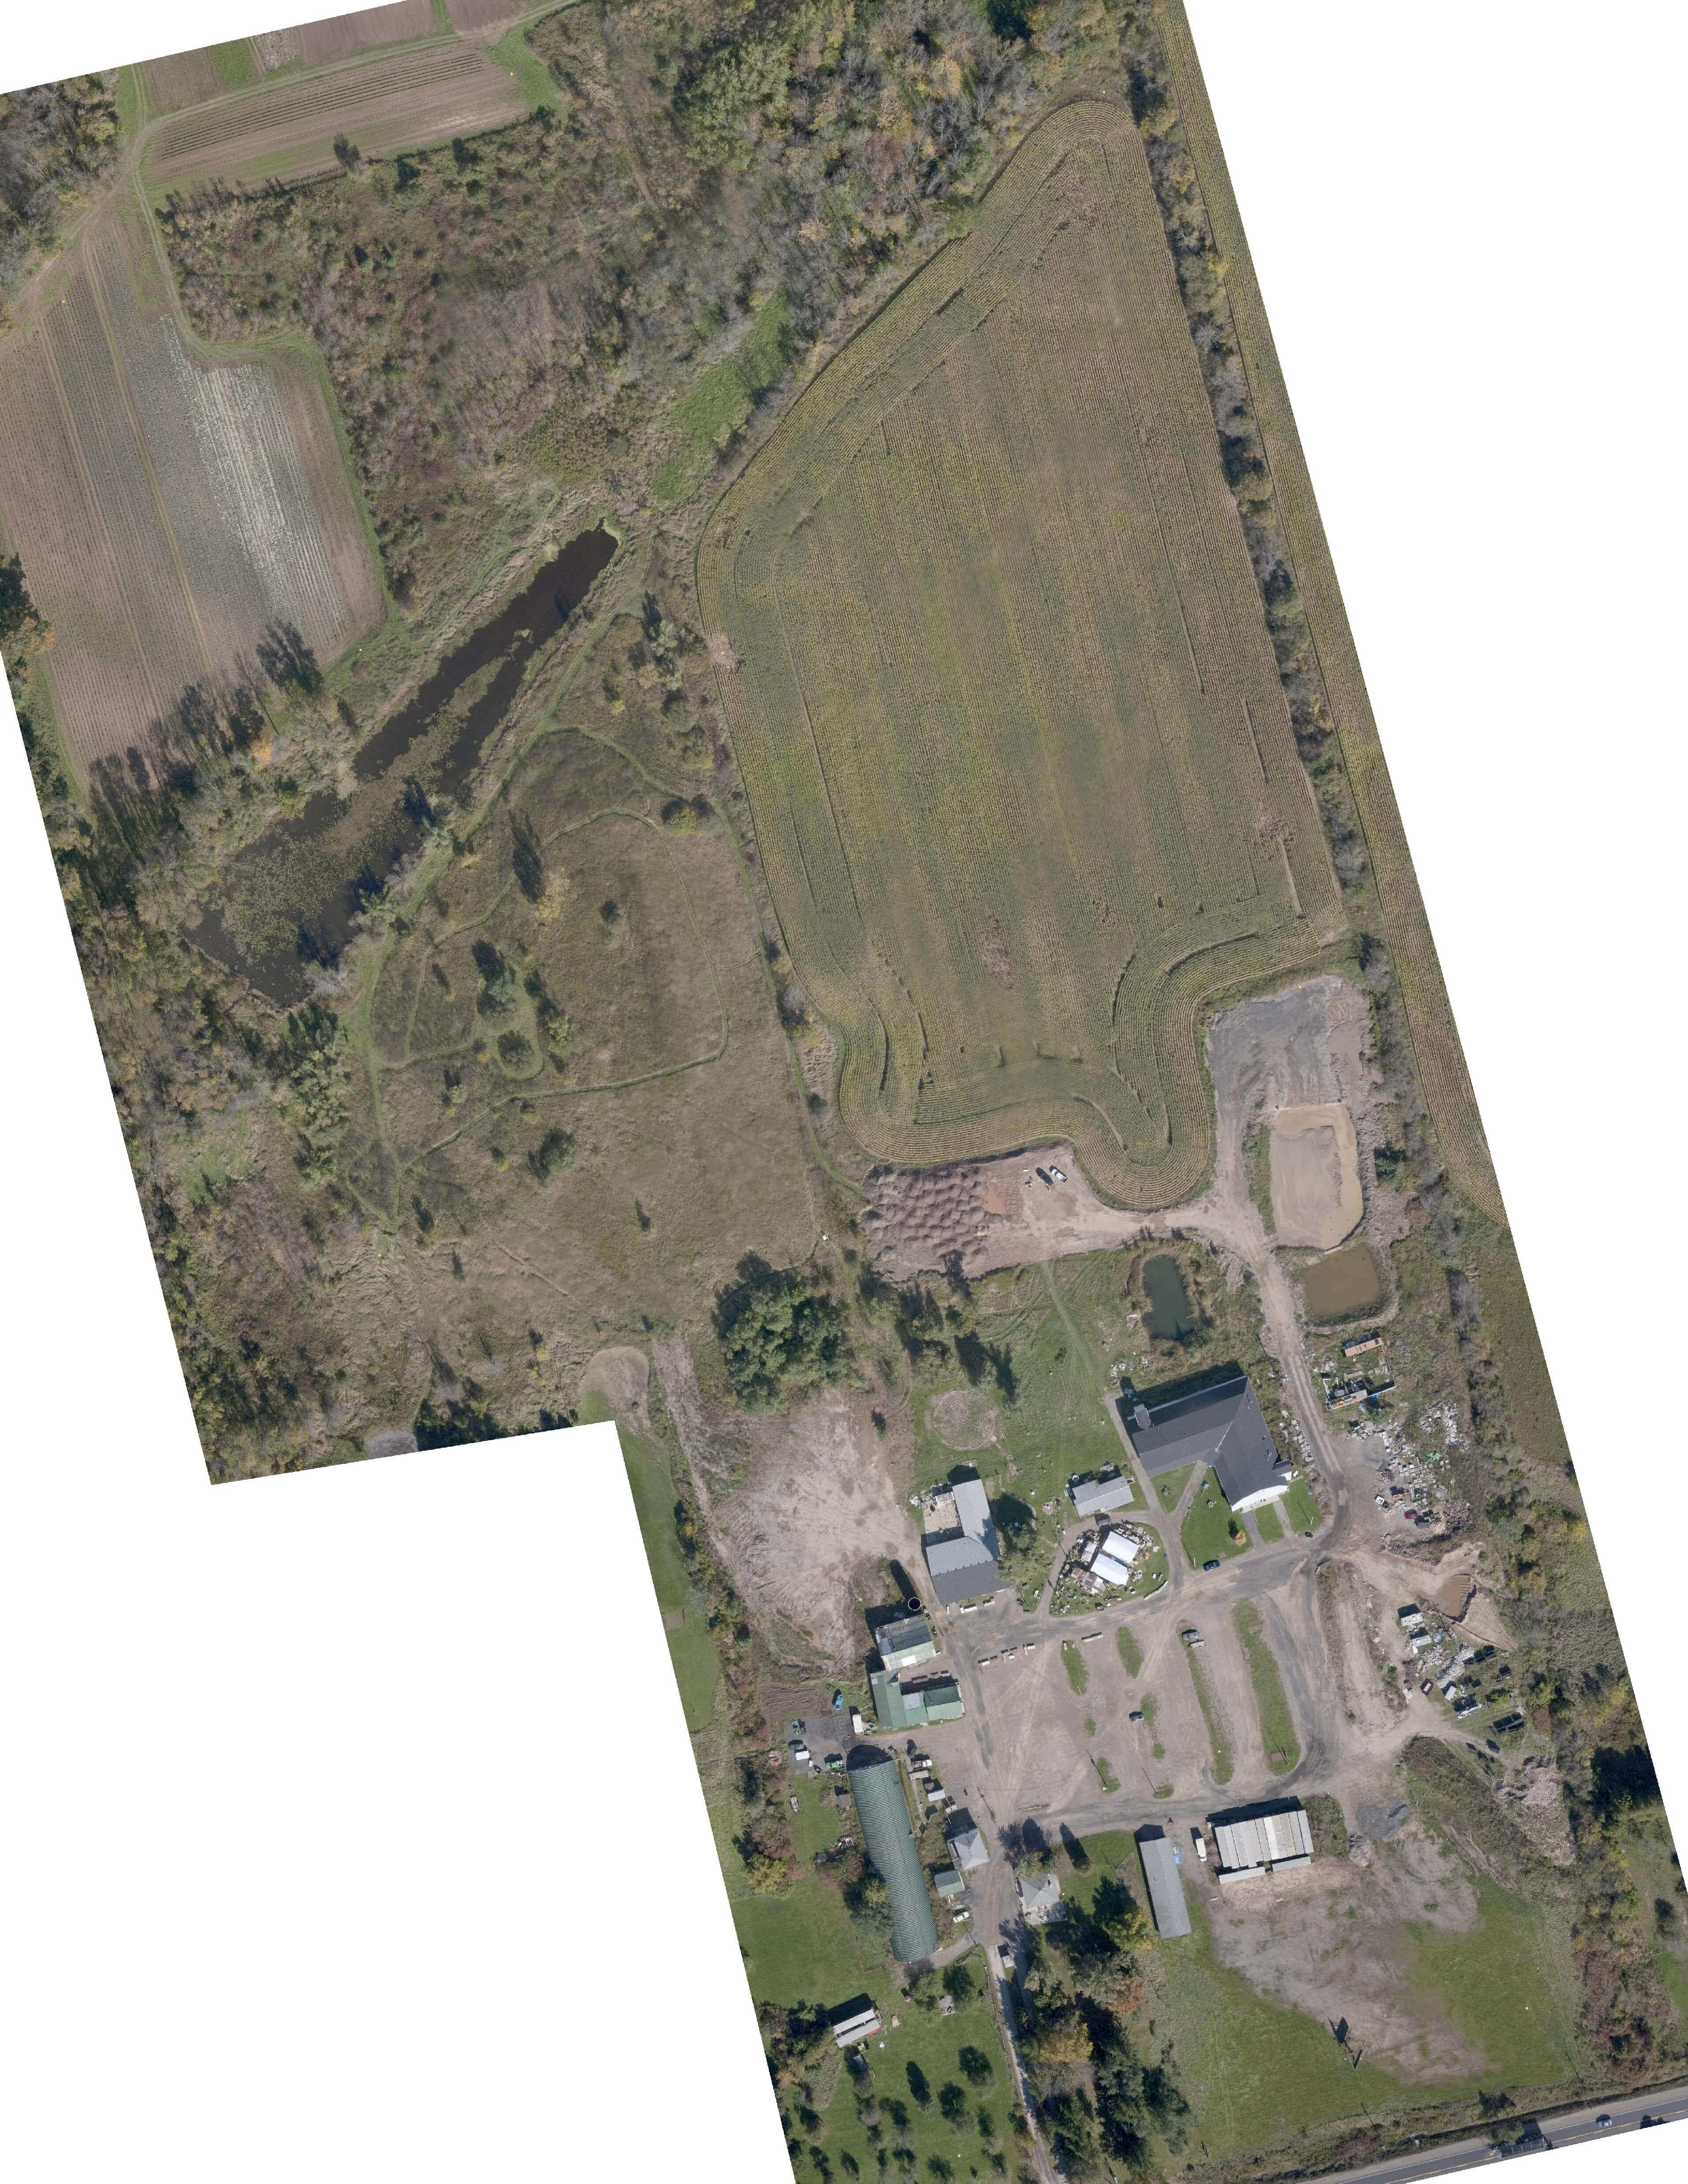 Aerial view of land development site